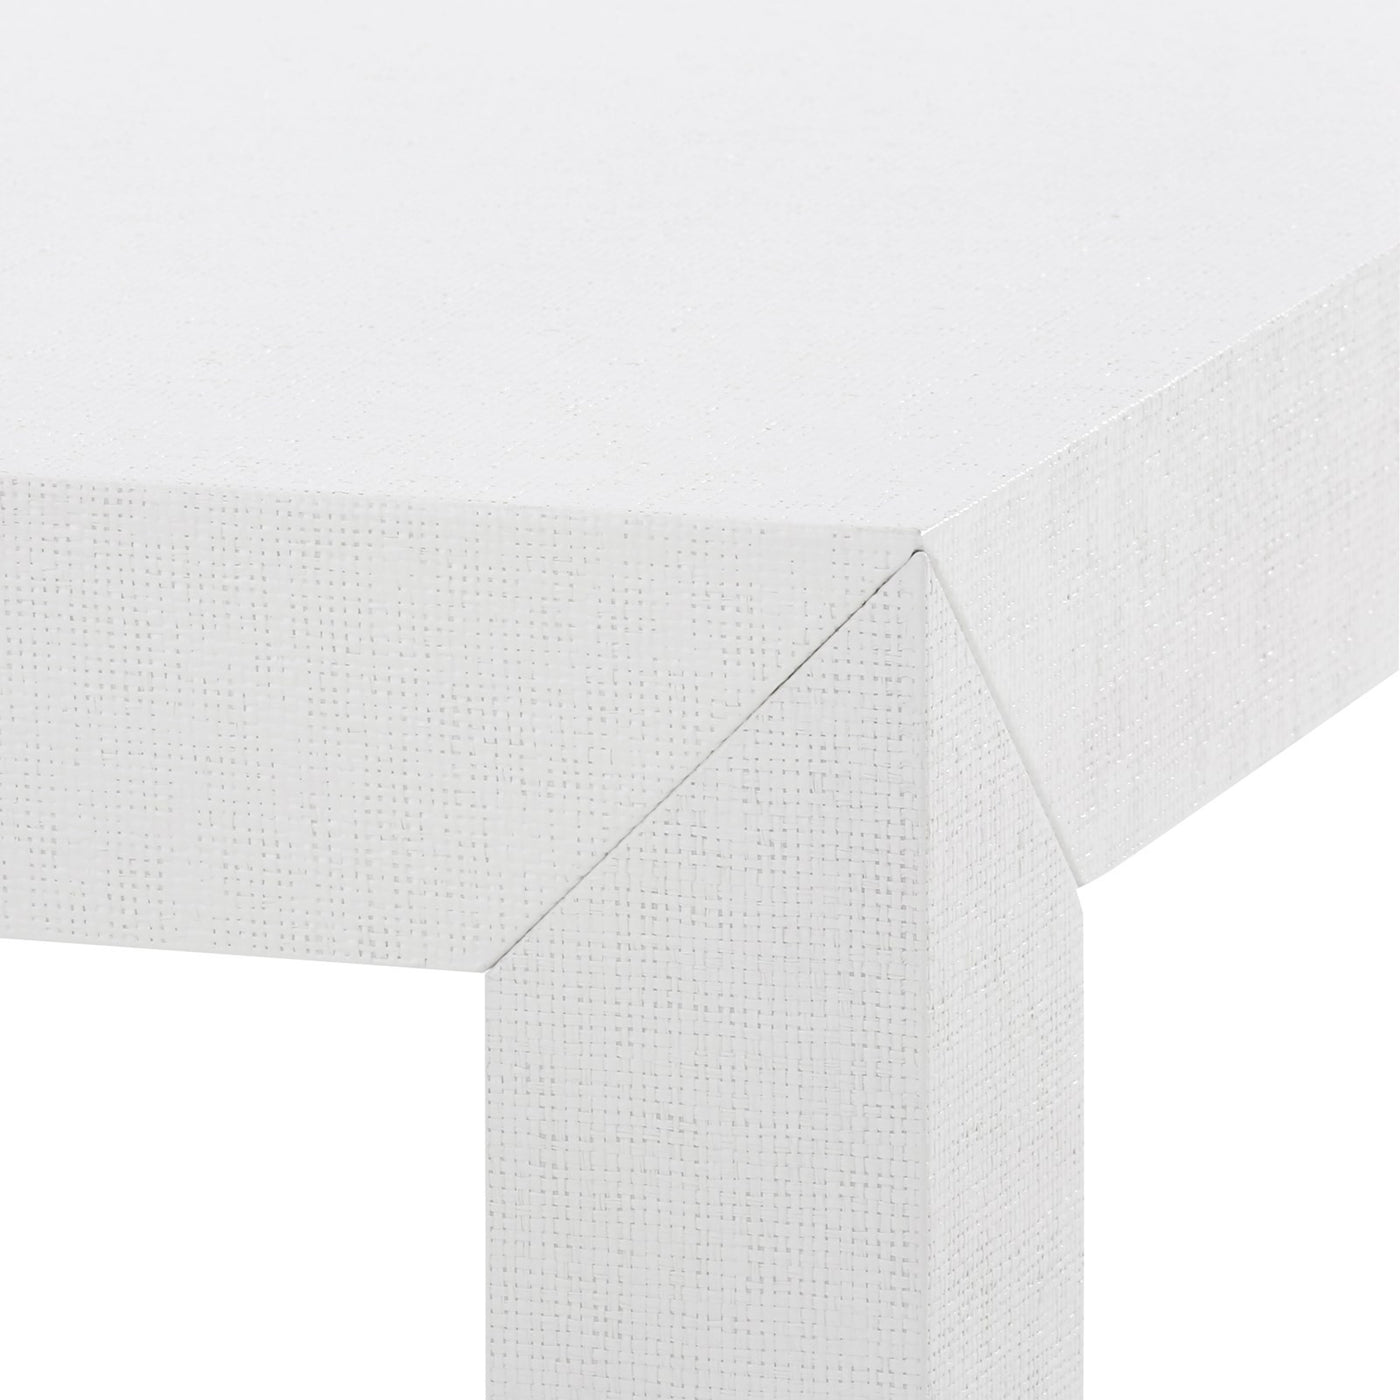 Bungalow 5 Parsons Coffee Table White PSN-300-59 corner detail